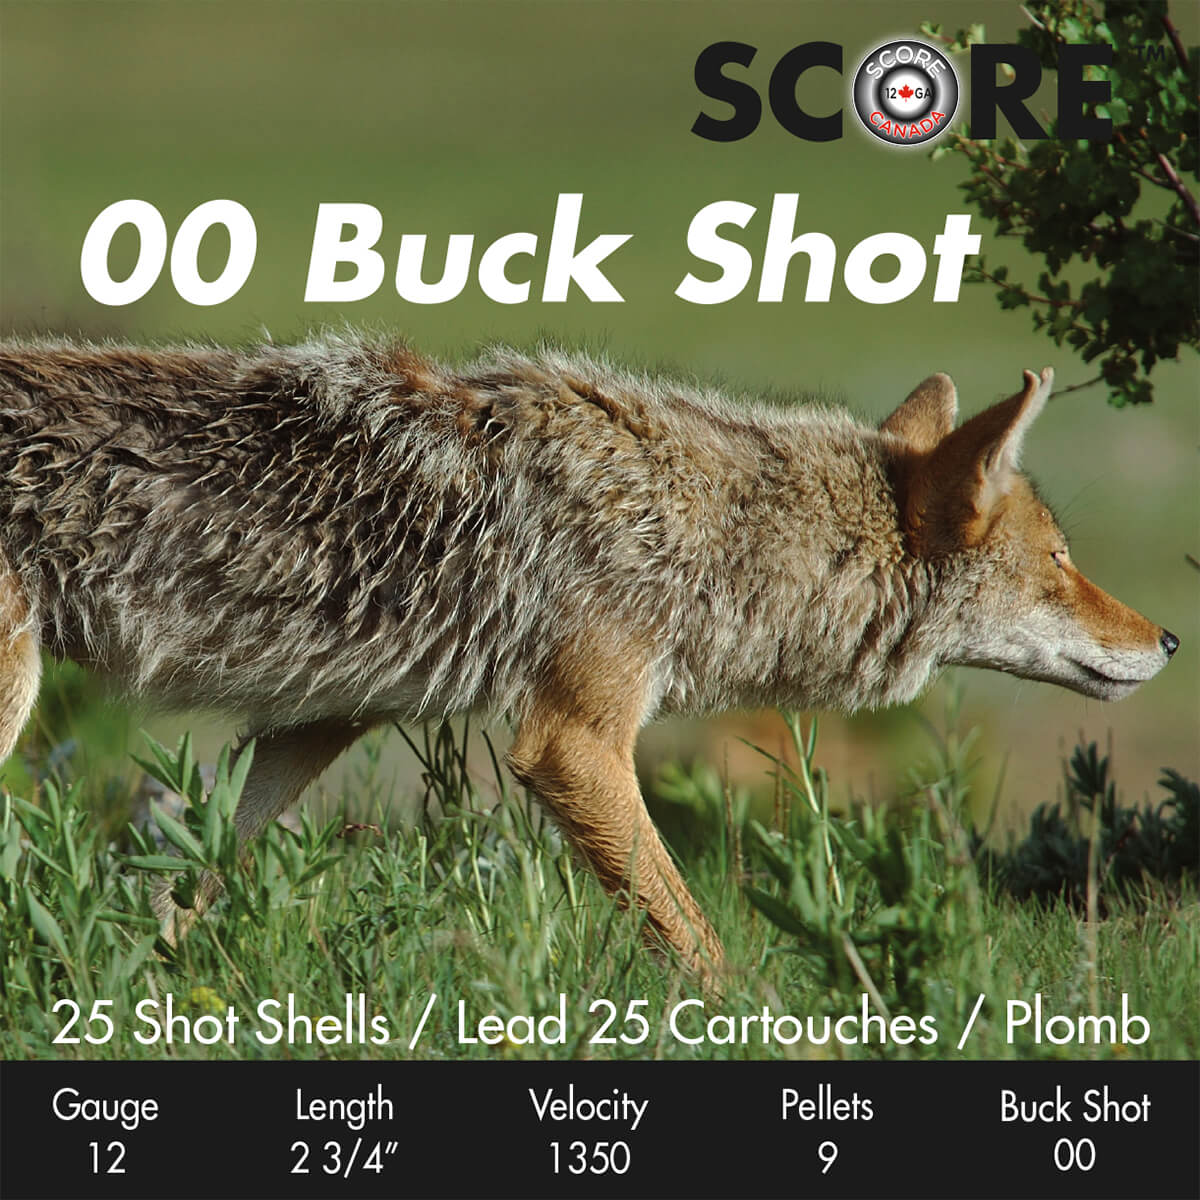 00 Buck Shot Ammo 2-3/4""